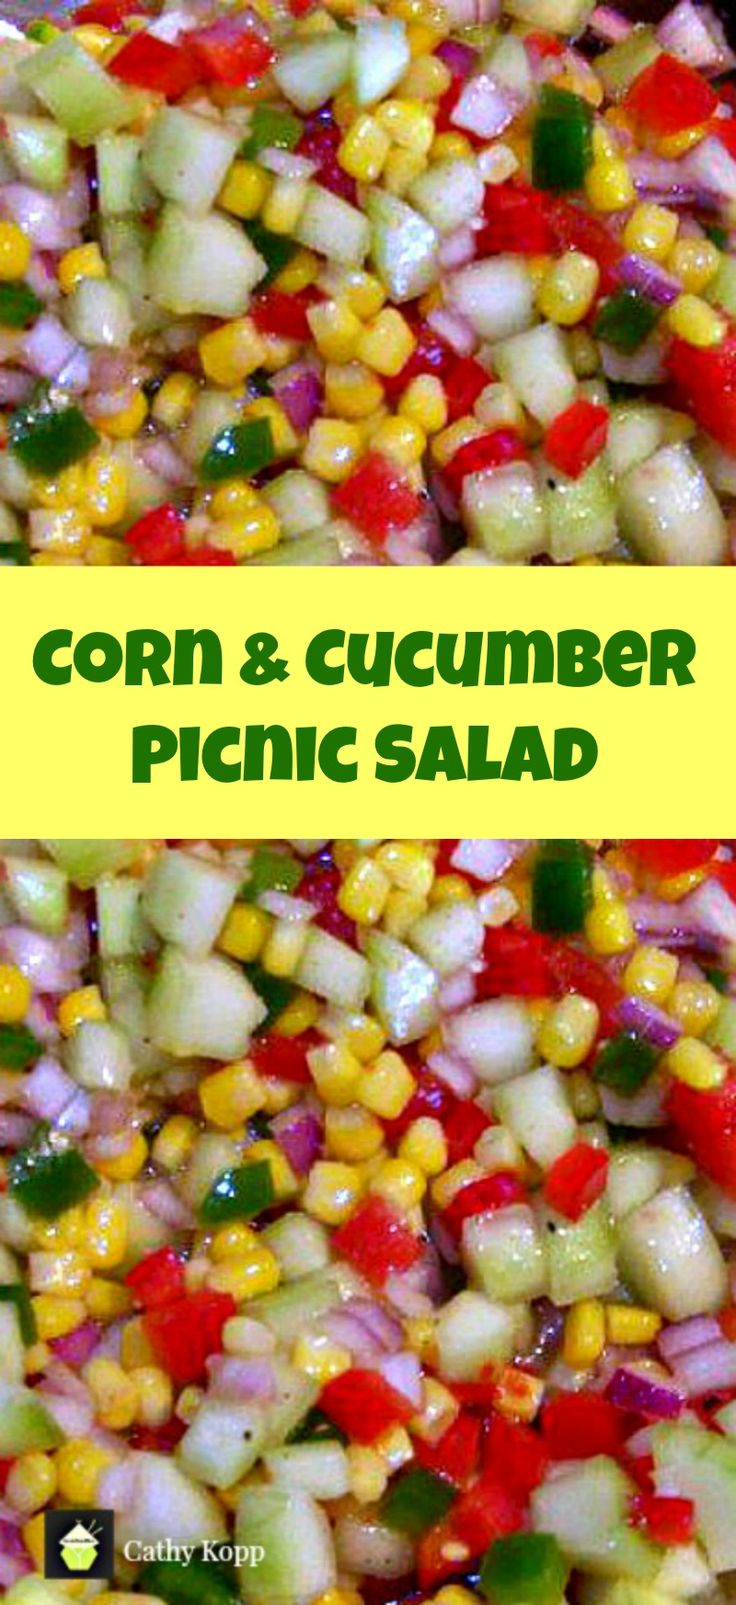 Corn and Cucumber Picnic Salad. A very simple yet great tasting salad and perfect for the holidays! | Lovefoodies.com